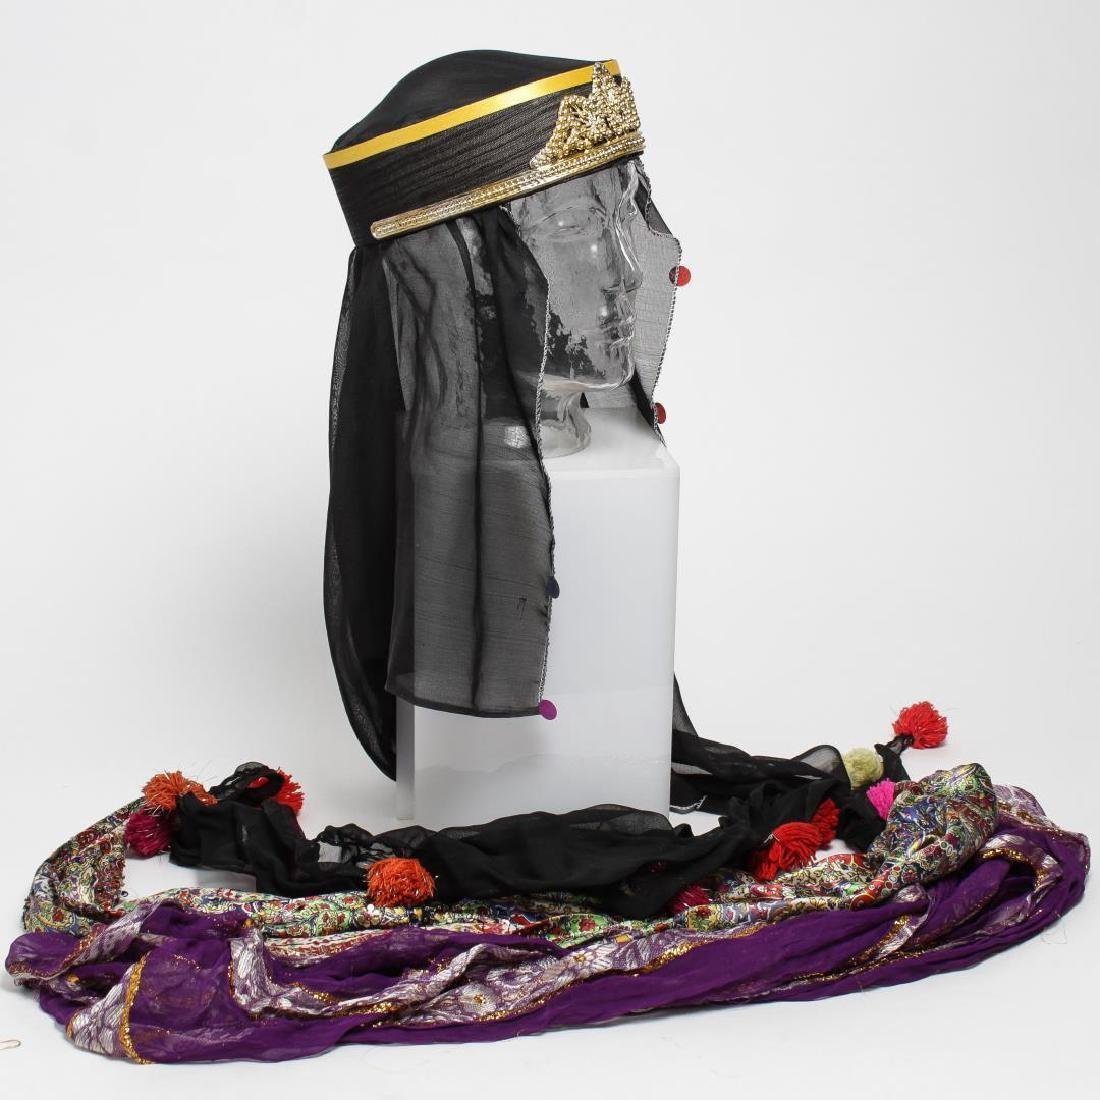 Middle Eastern or Belly Dance Headdresses, 4 - 2